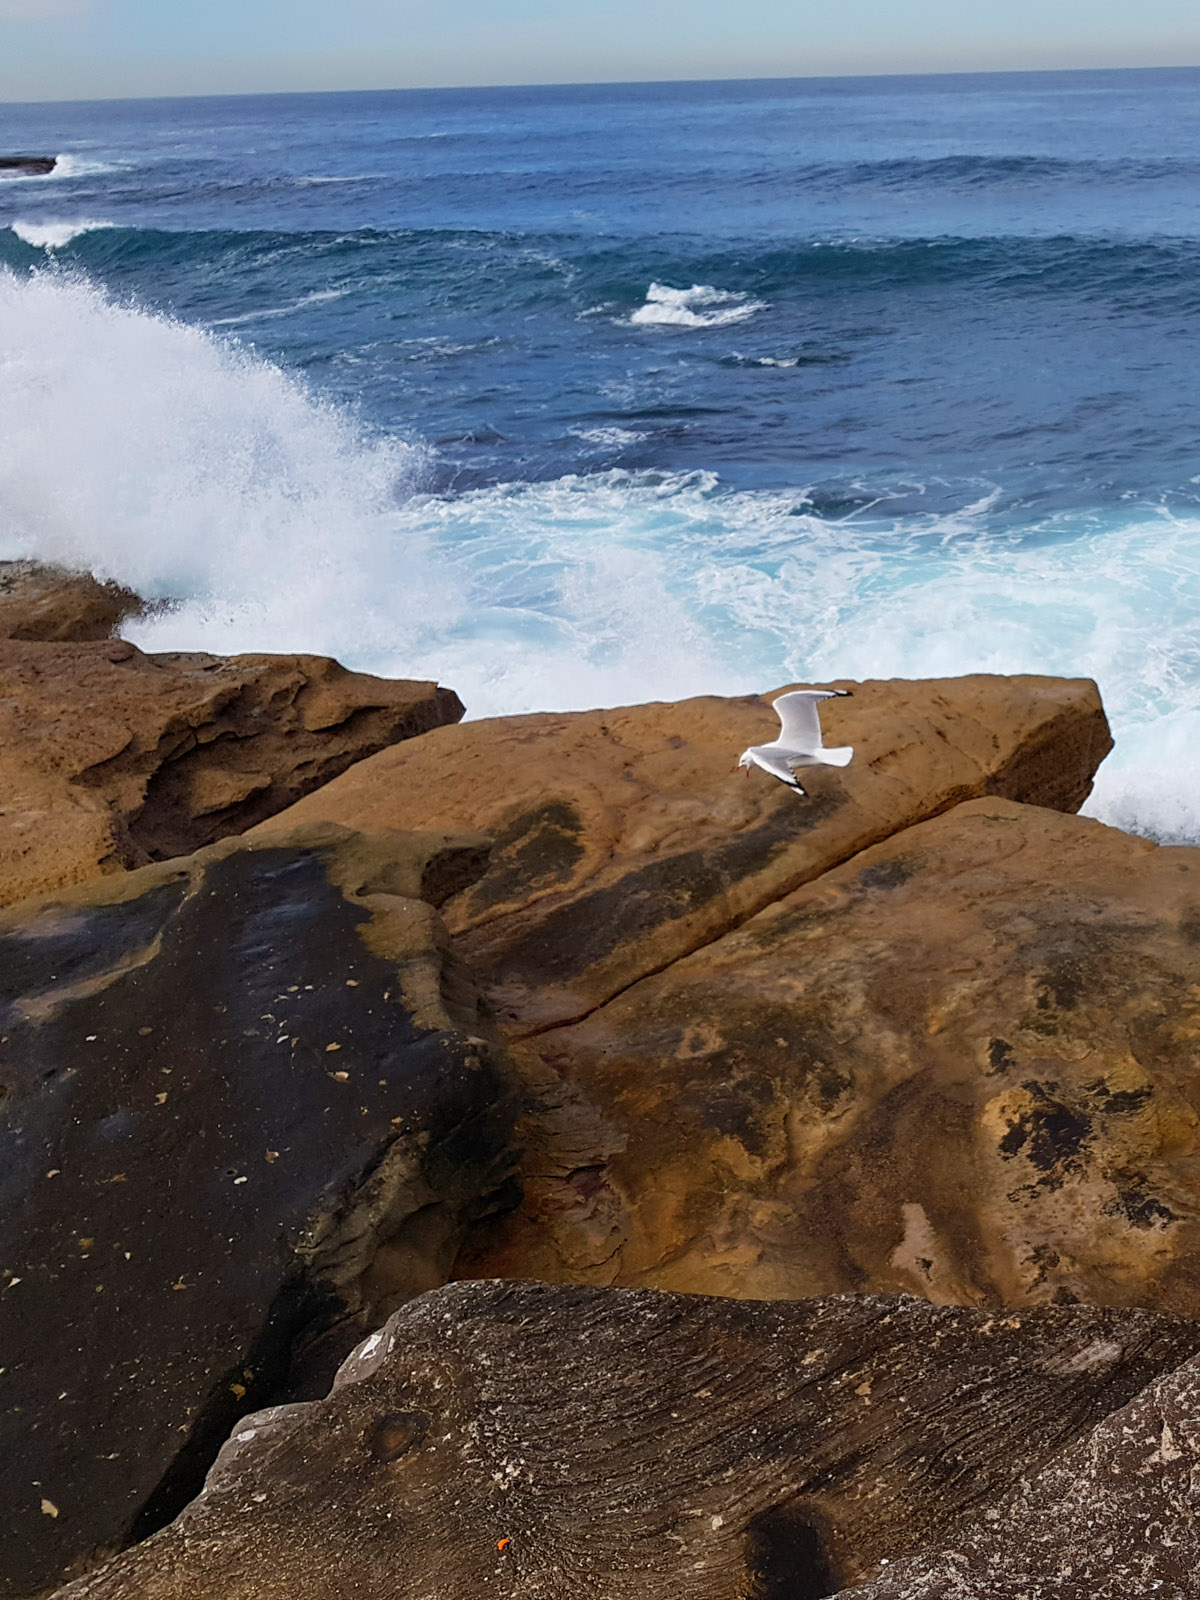 SGMT Australia Sydney_Bondi to Coogee Coastal Walk_16 Clovelly Beach Bird Flying Over Rocks and Water